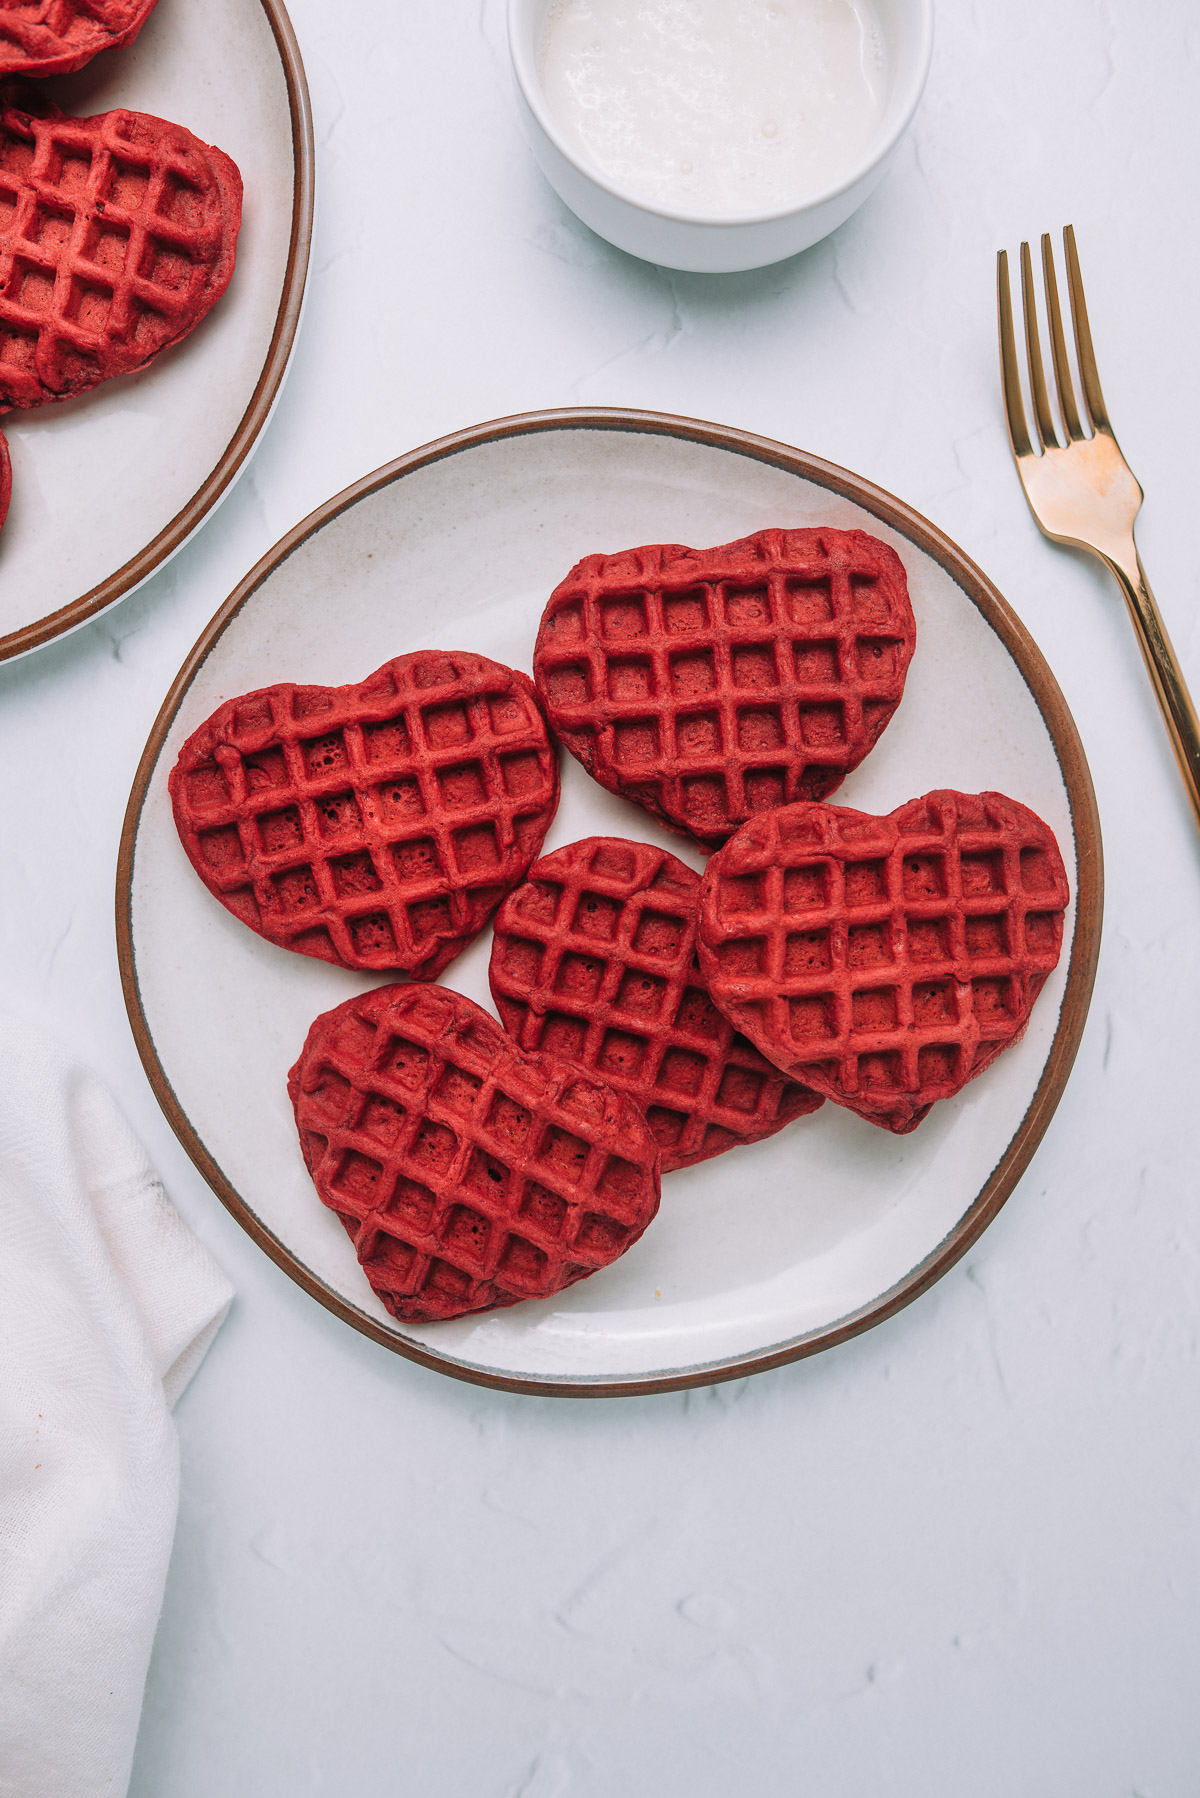 Buttermilk Red Velvet Waffles on a plate sitting on a white table with a gold fork.